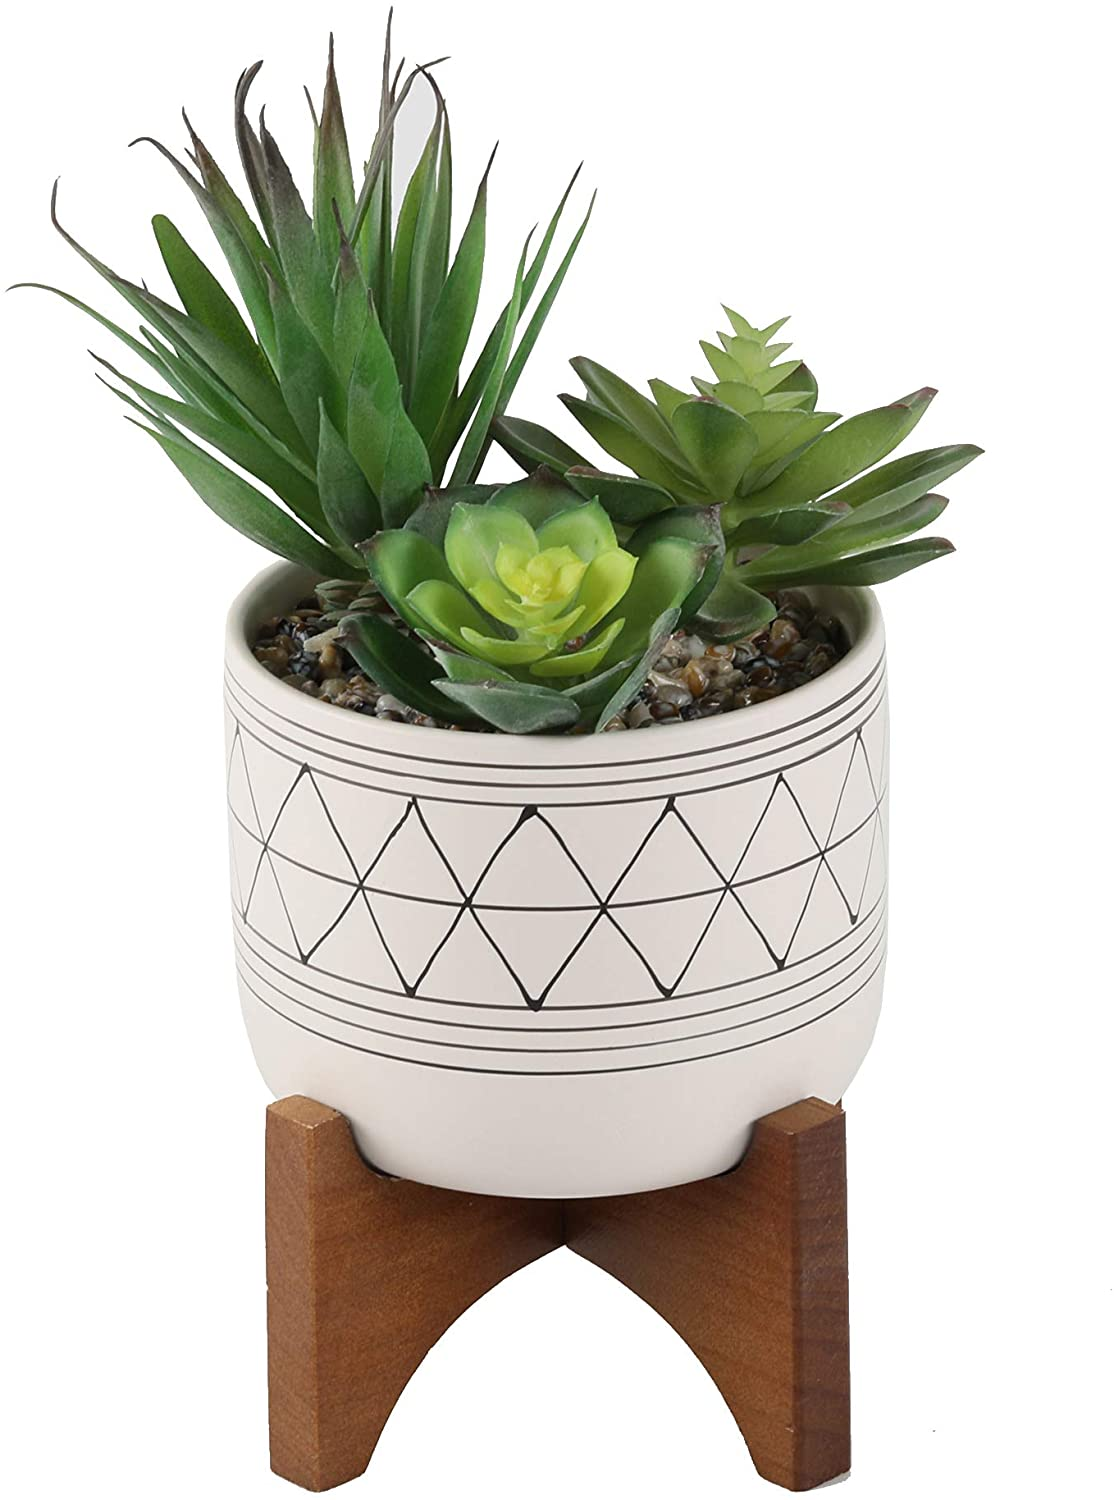 Flora Bunda Artificial Succulents in 5 Inch White Black Line Geometric Ceramic Planter with Wood Stand Mid Century for Home Office Decor